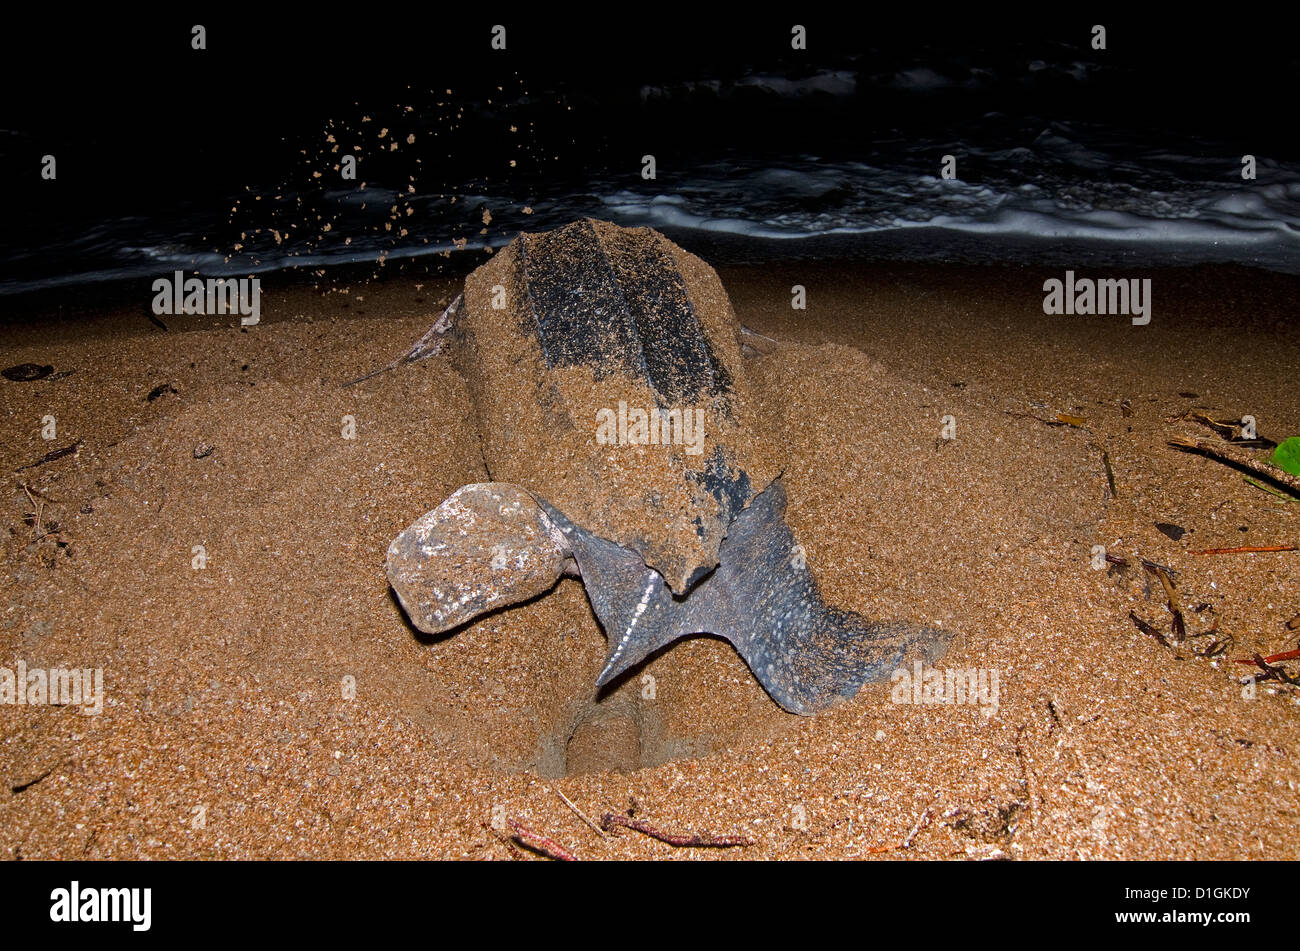 Leatherback turtle (Dermochelys coriacea) excavating a nest hole, Shell Beach, Guyana, South America - Stock Image